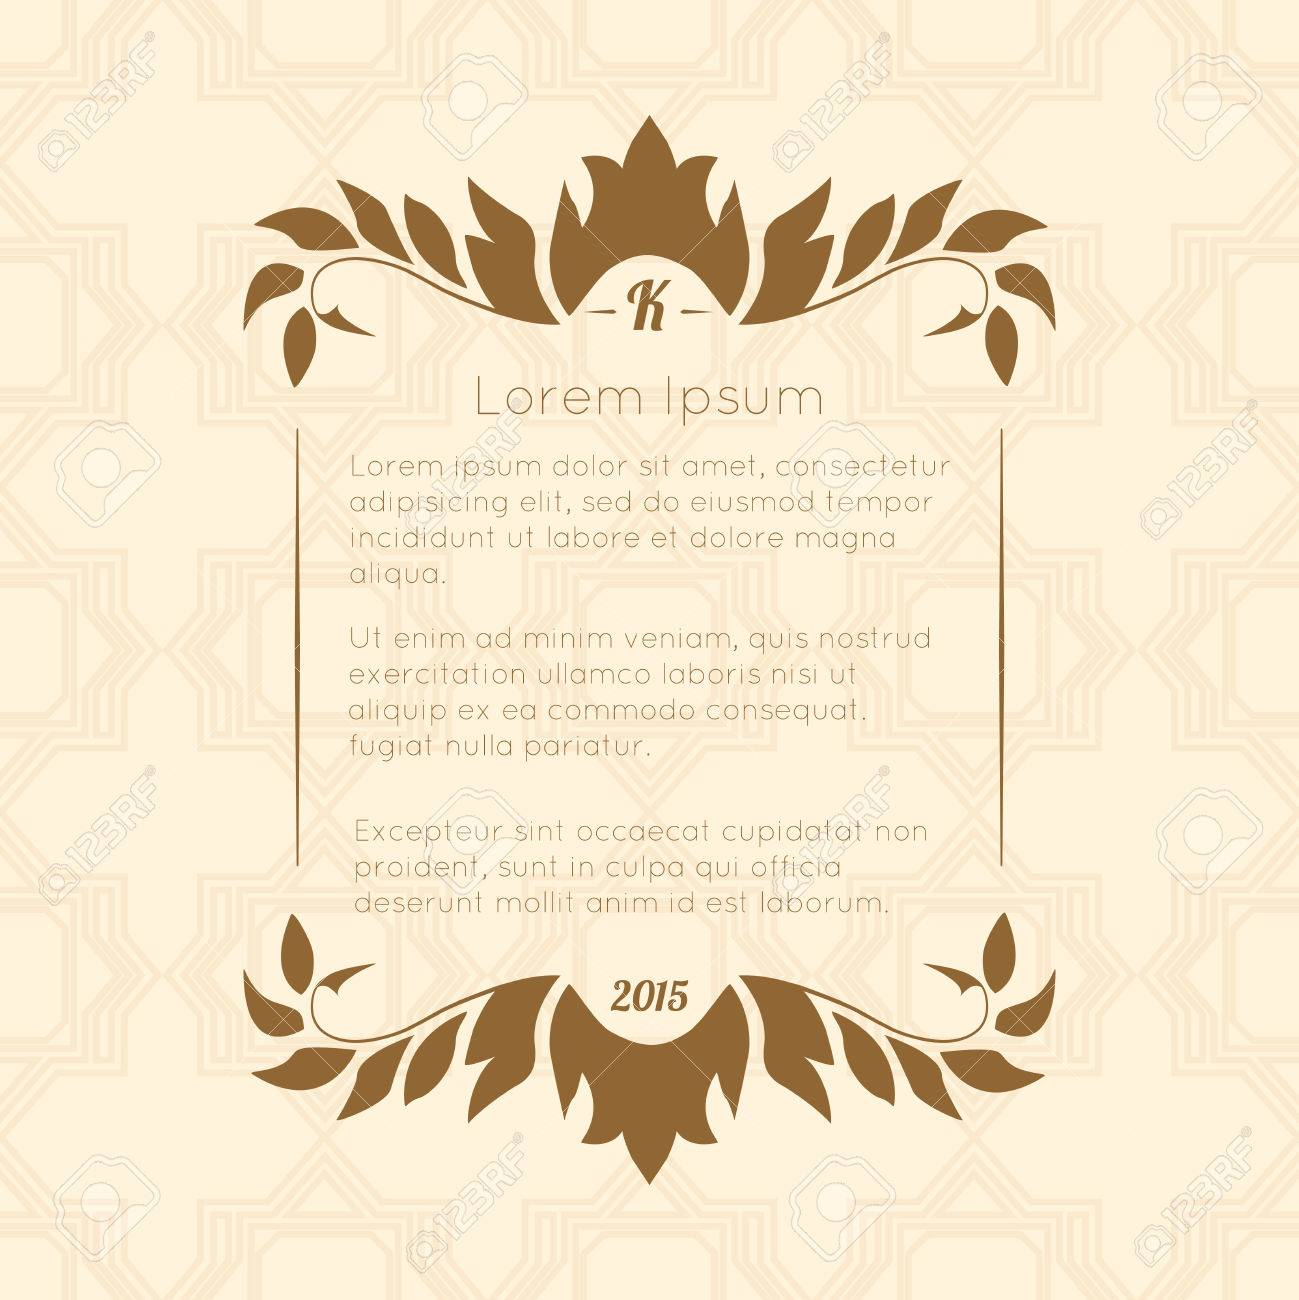 Border designs for greeting cards template design for invitation template design for invitation labels poem writing stopboris Choice Image